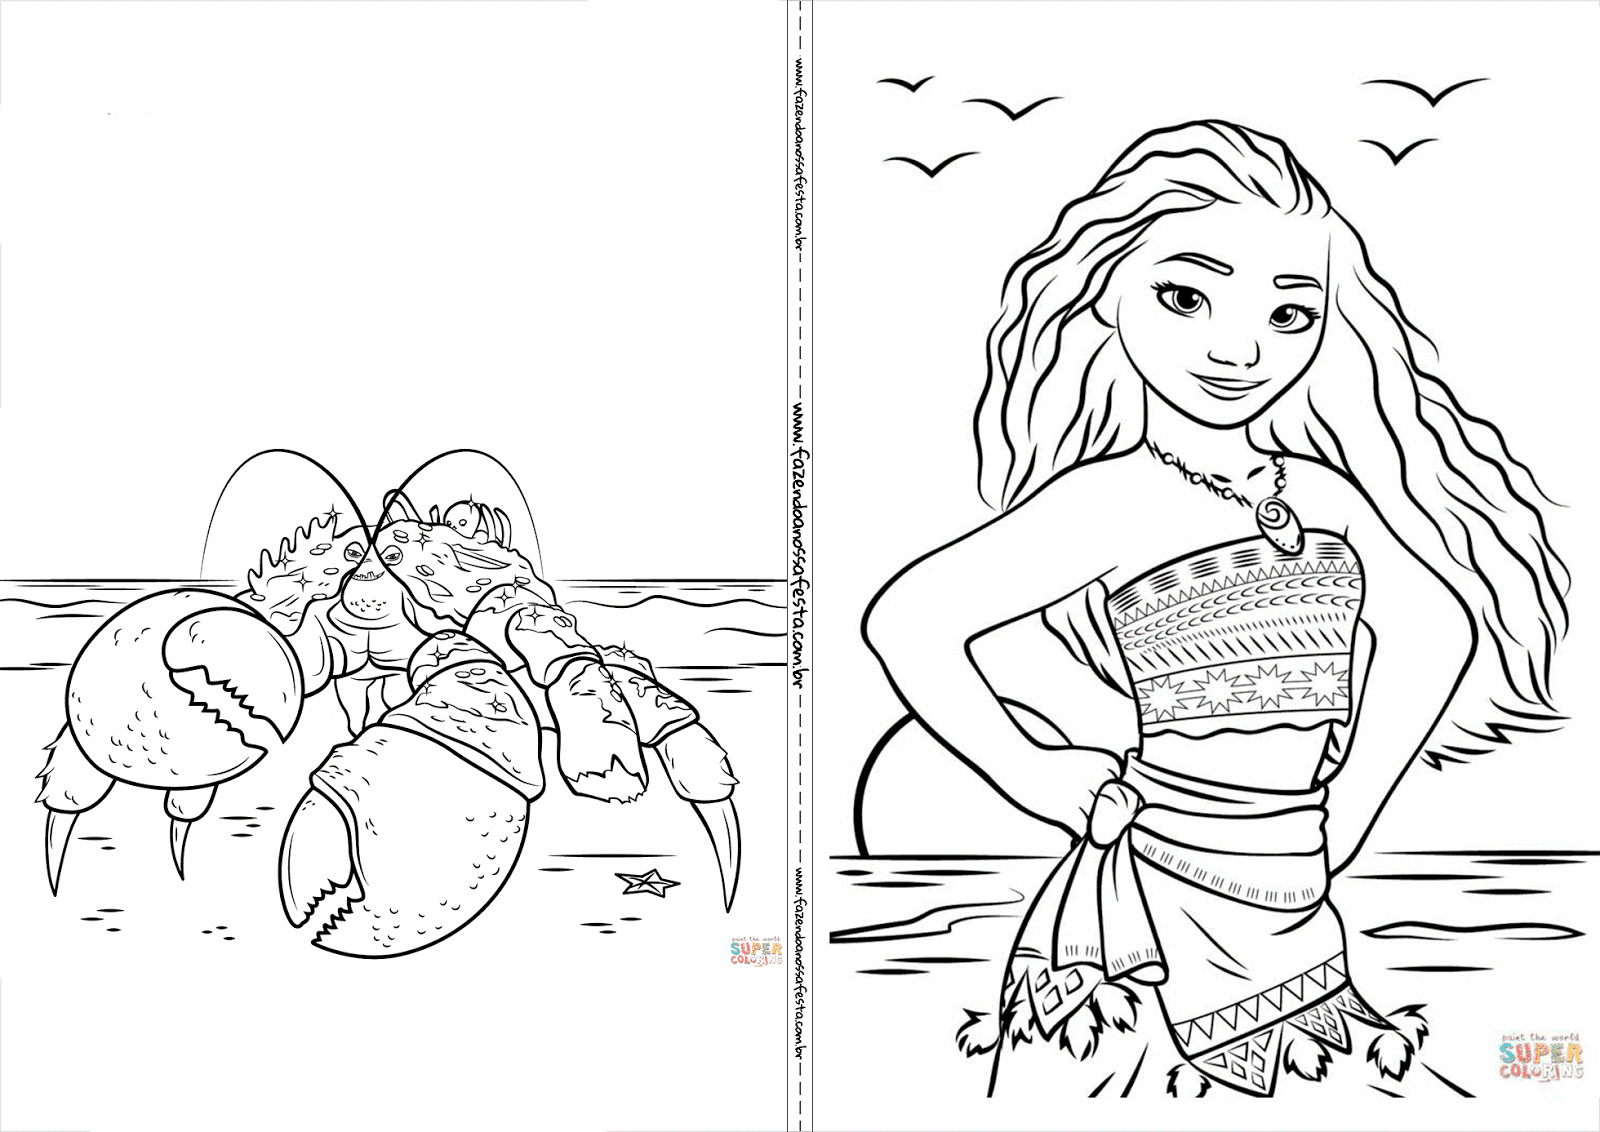 Moana Free Printable Coloring Book Oh My Fiesta In English